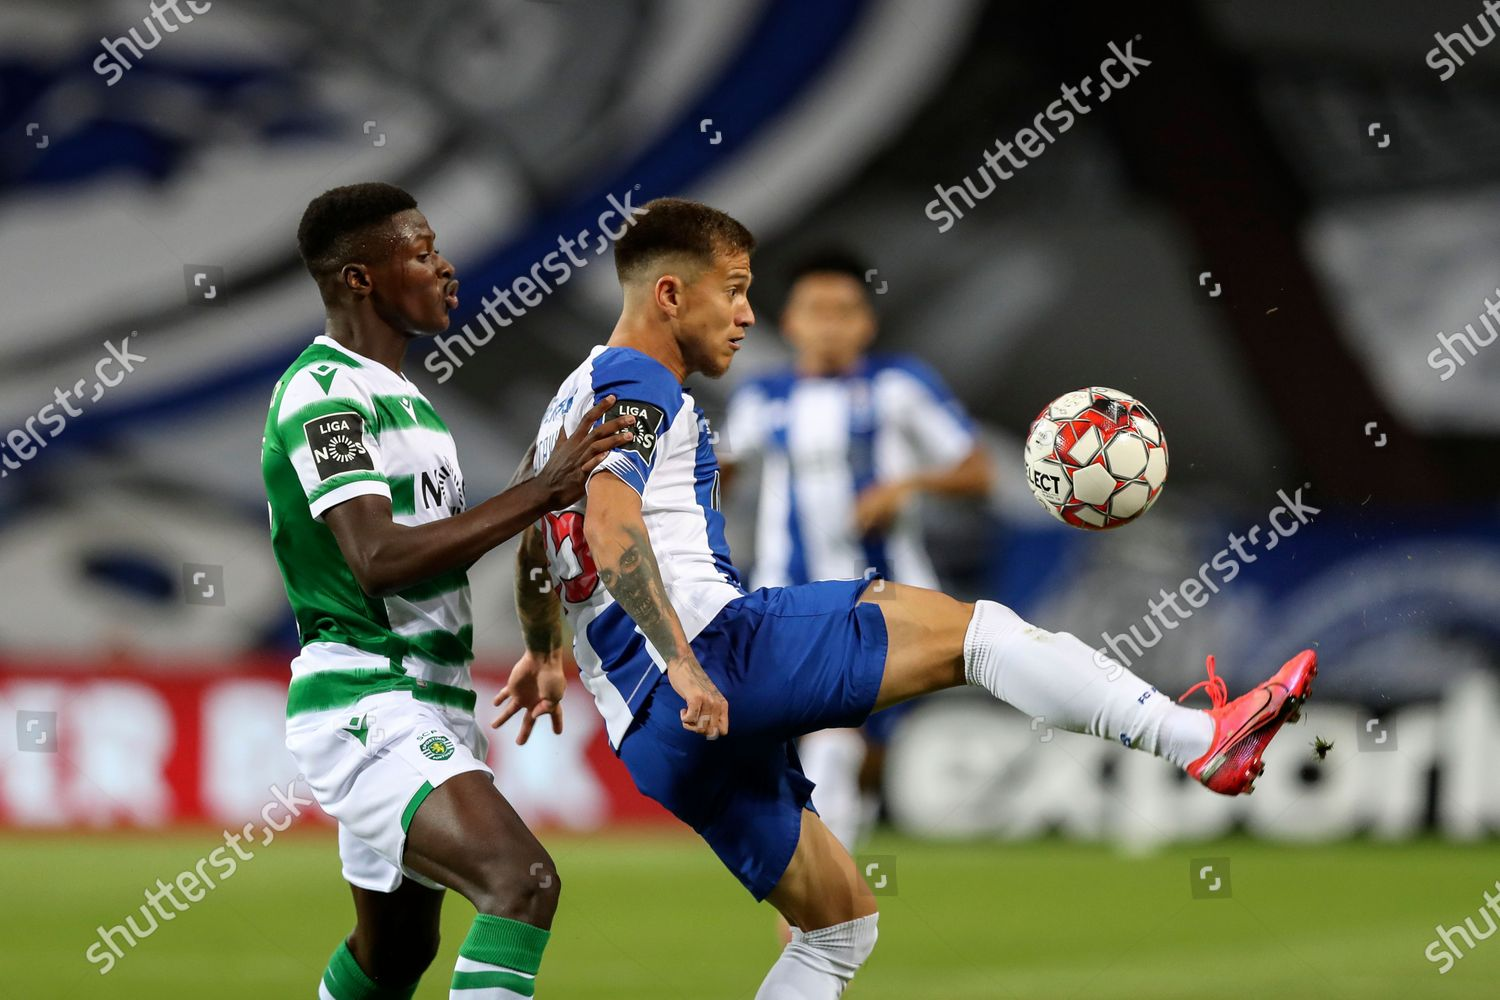 Fc Portos Otavio R Action Against Sportings Editorial Stock Photo Stock Image Shutterstock